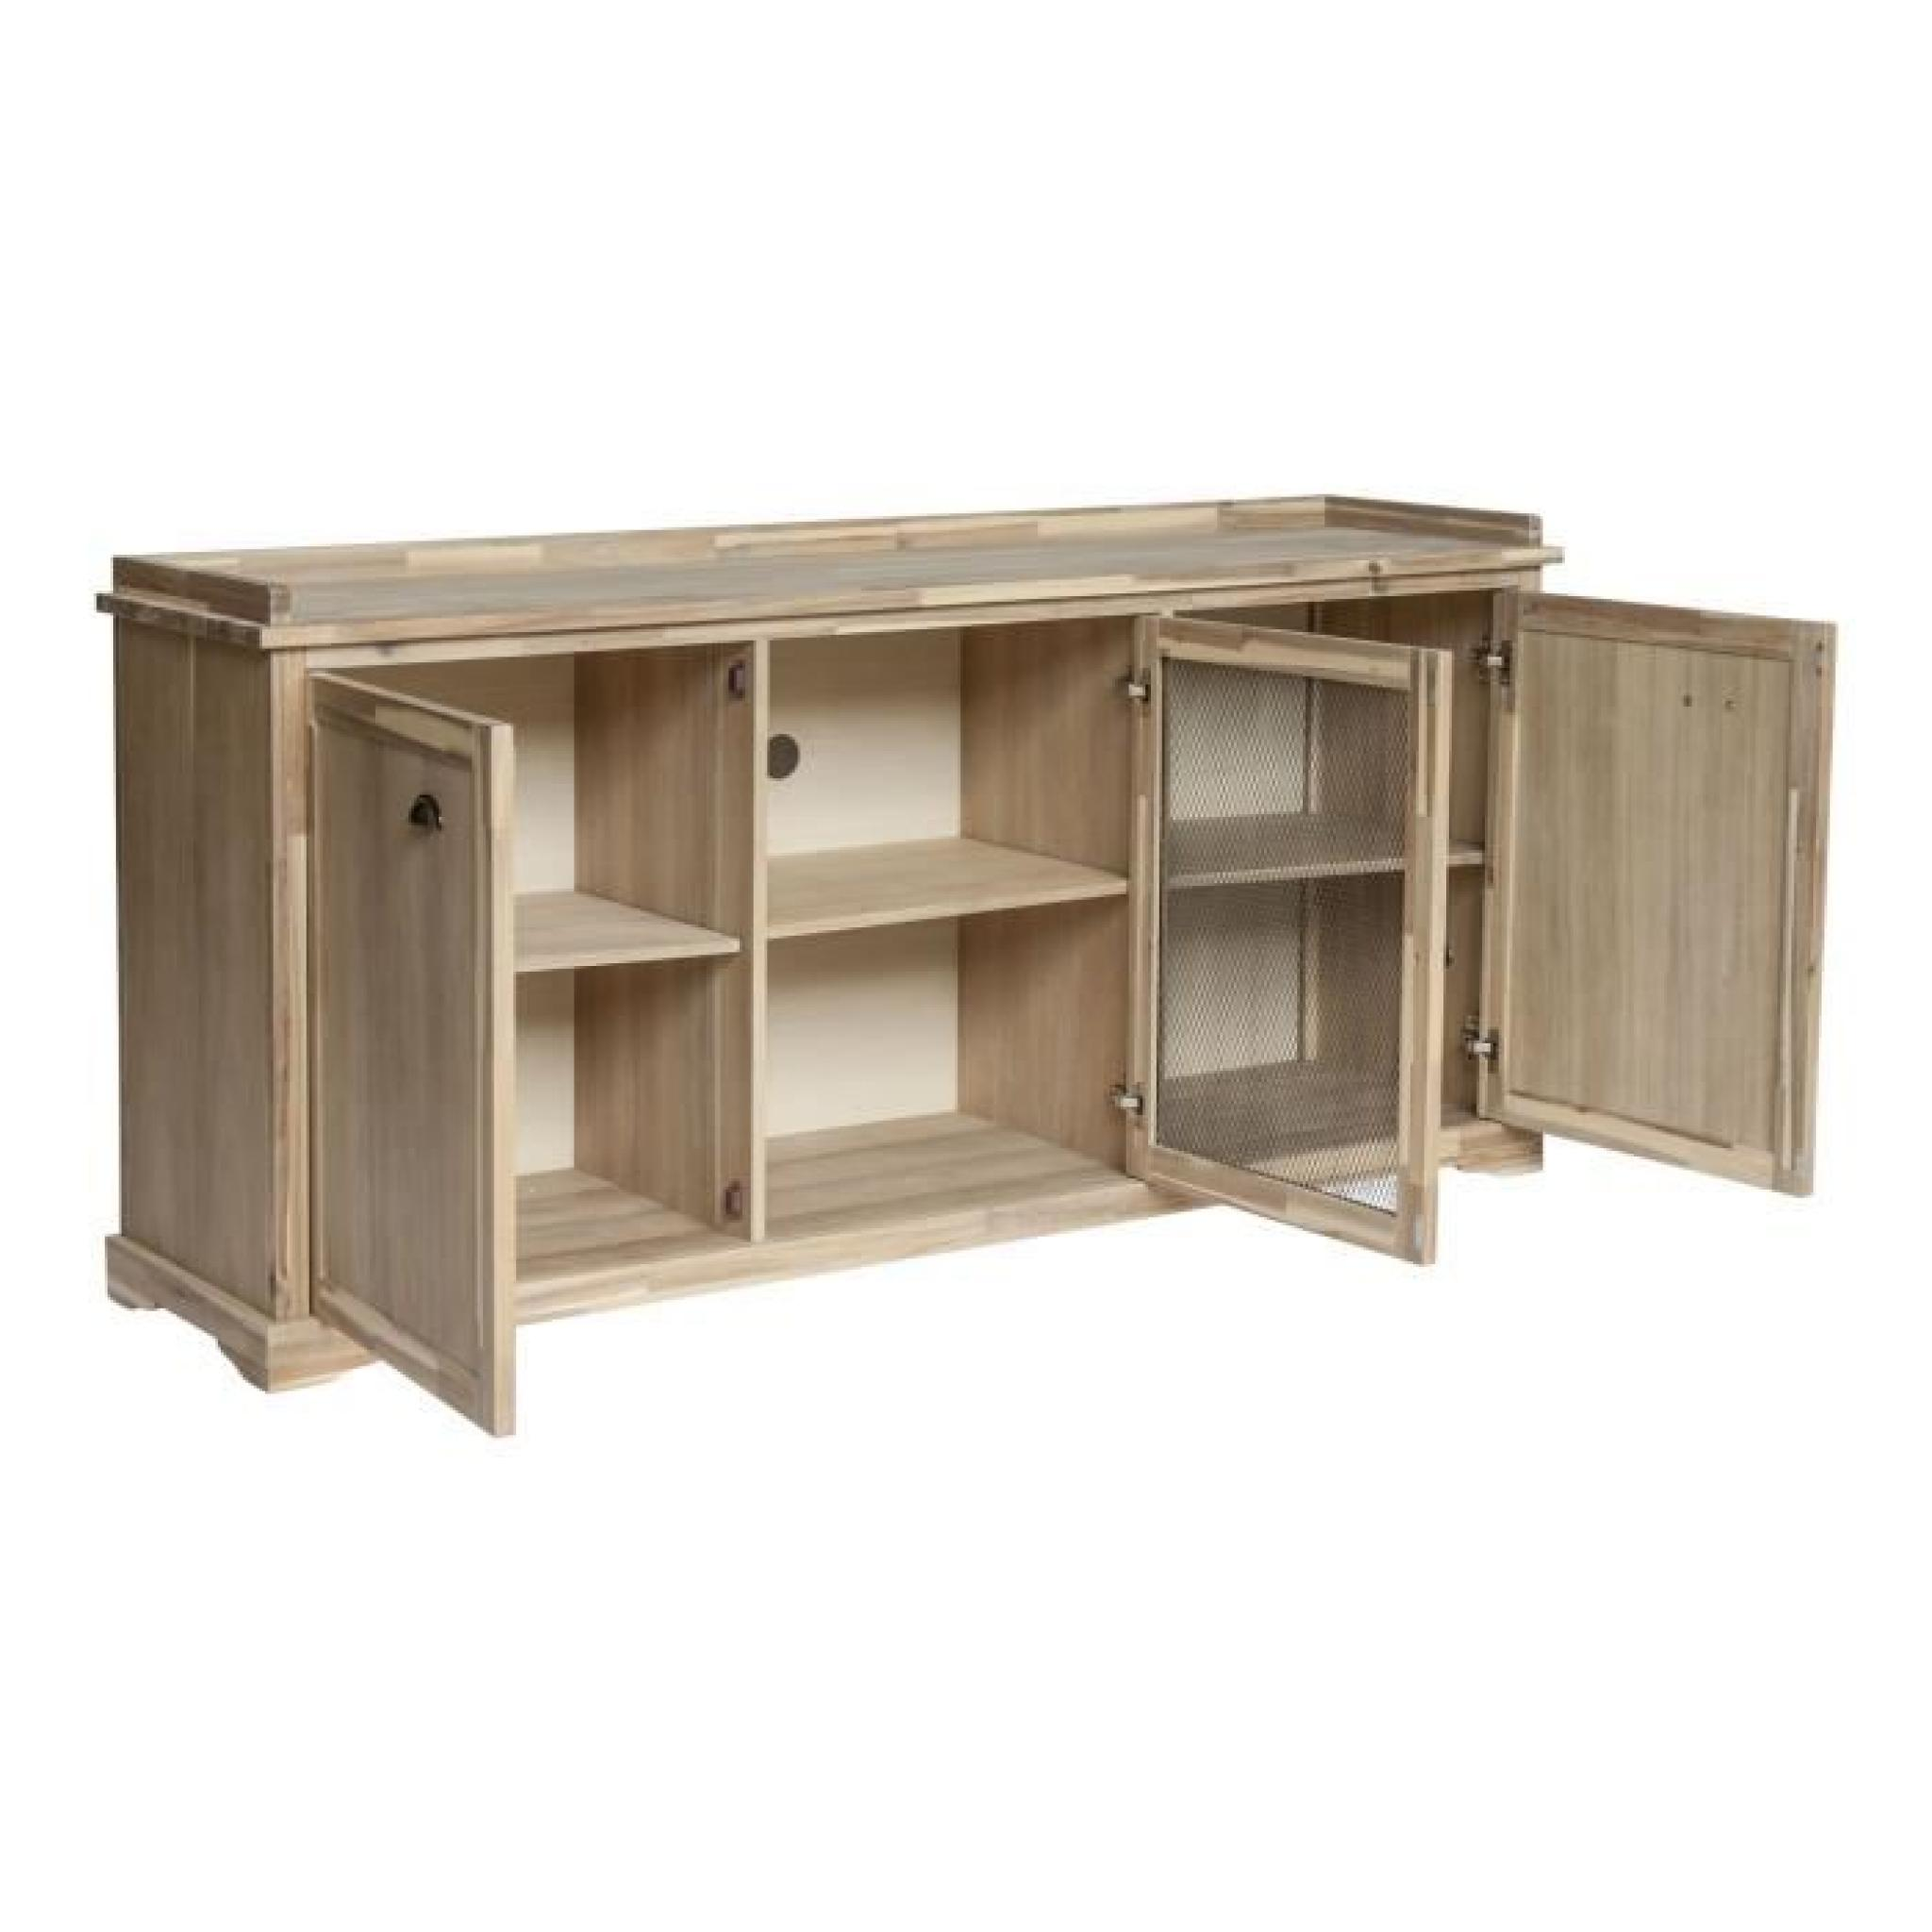 Gaston meuble buffet bas en acacia massif avec porte for Meuble buffet bas